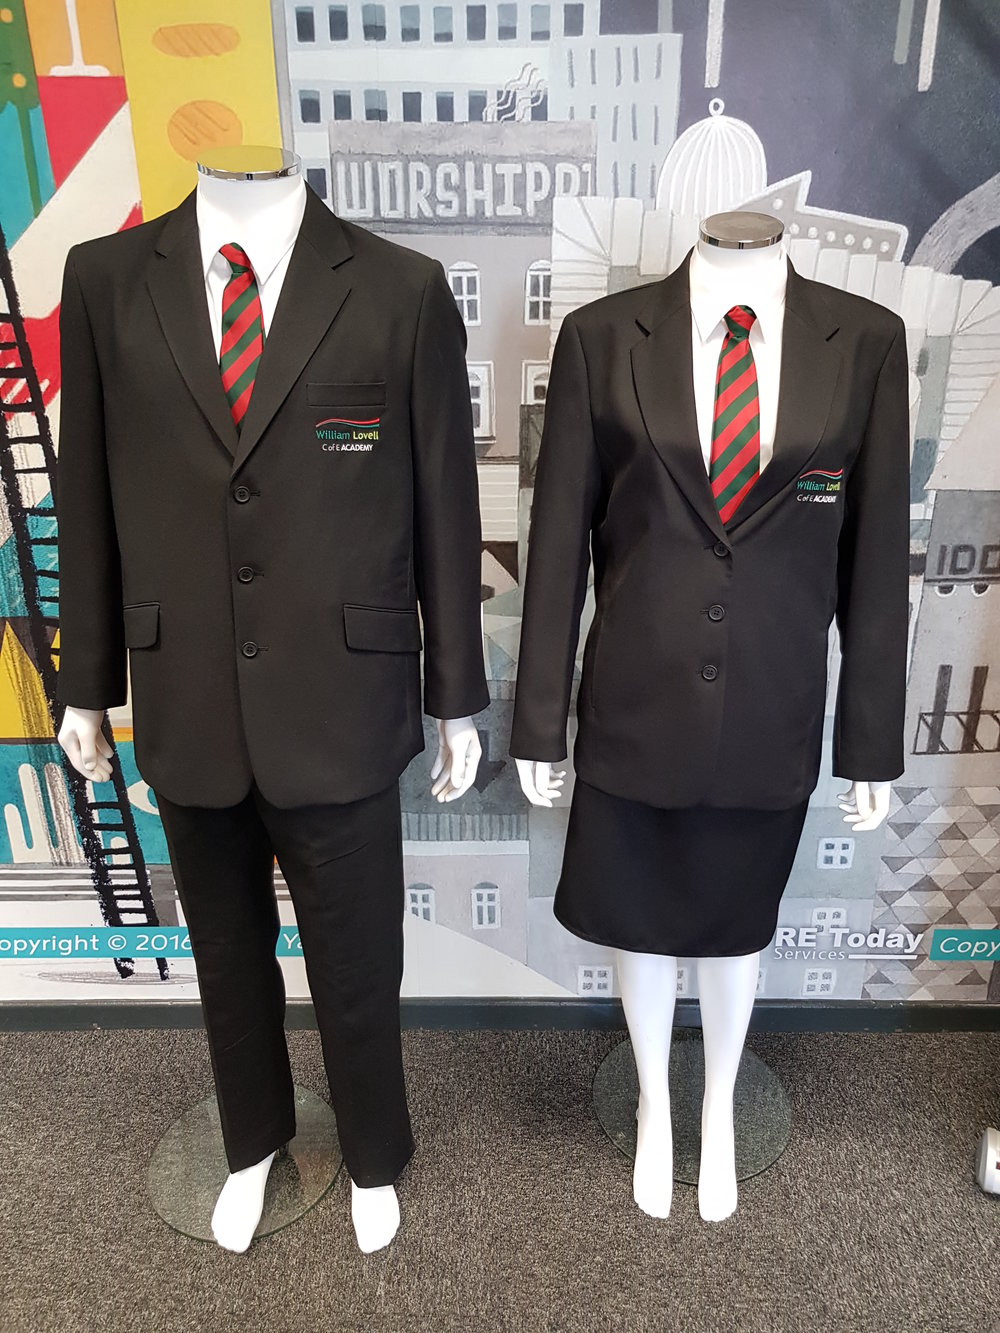 WLA Uniform - Uniform is a key driver in raising standards and expectations among all students and the Academy places a high level of importance on this. Please be aware that failure to follow the uniform dress code will be challenged. There are to be no variations on a theme.